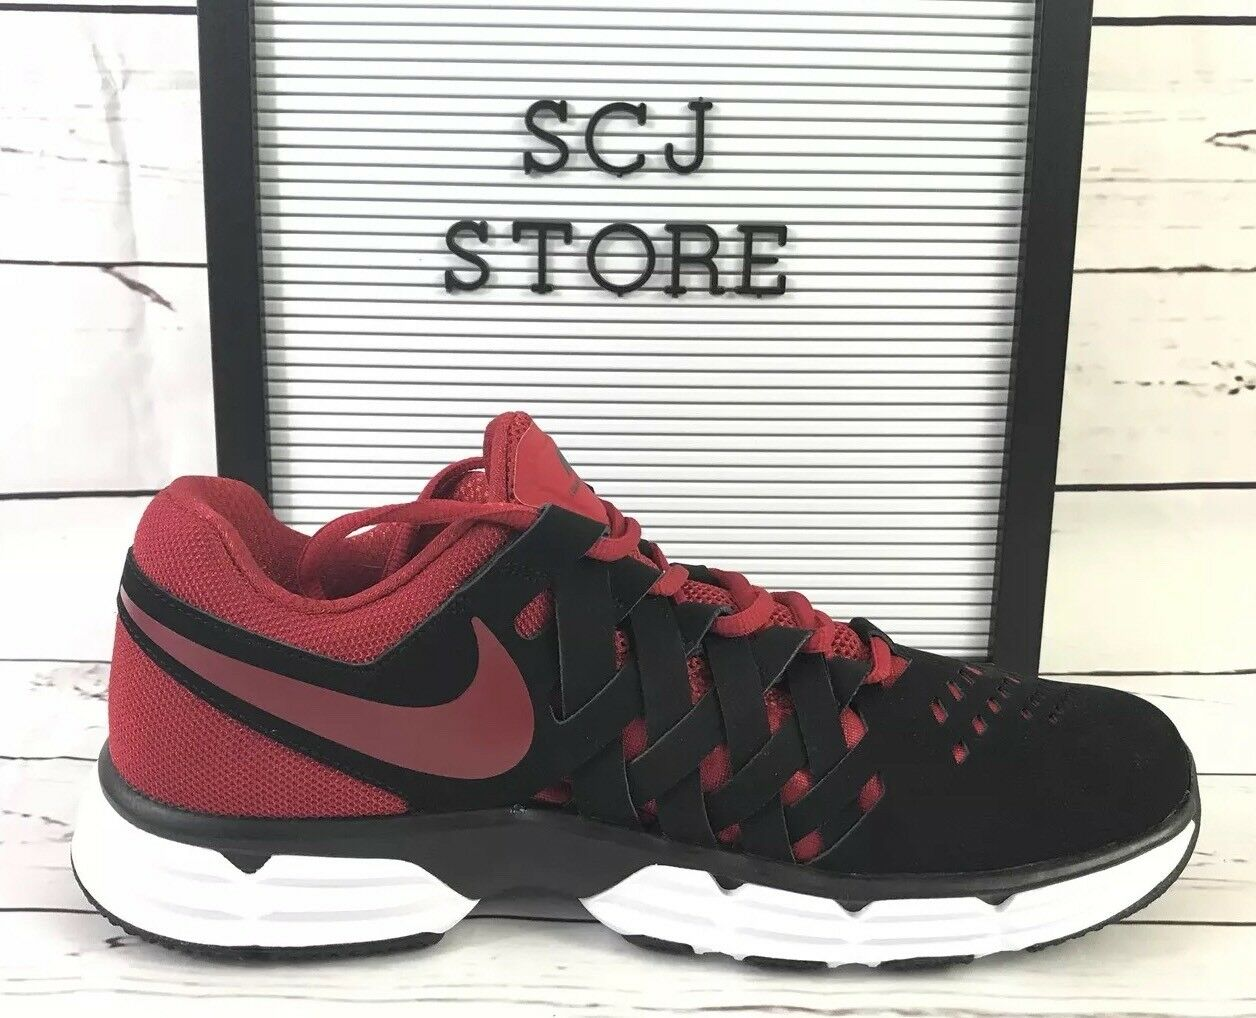 Nike Lunar Finger trap Men's Training Training Training shoes 898066 Black Gym Red. Size 9.5 6f86f9